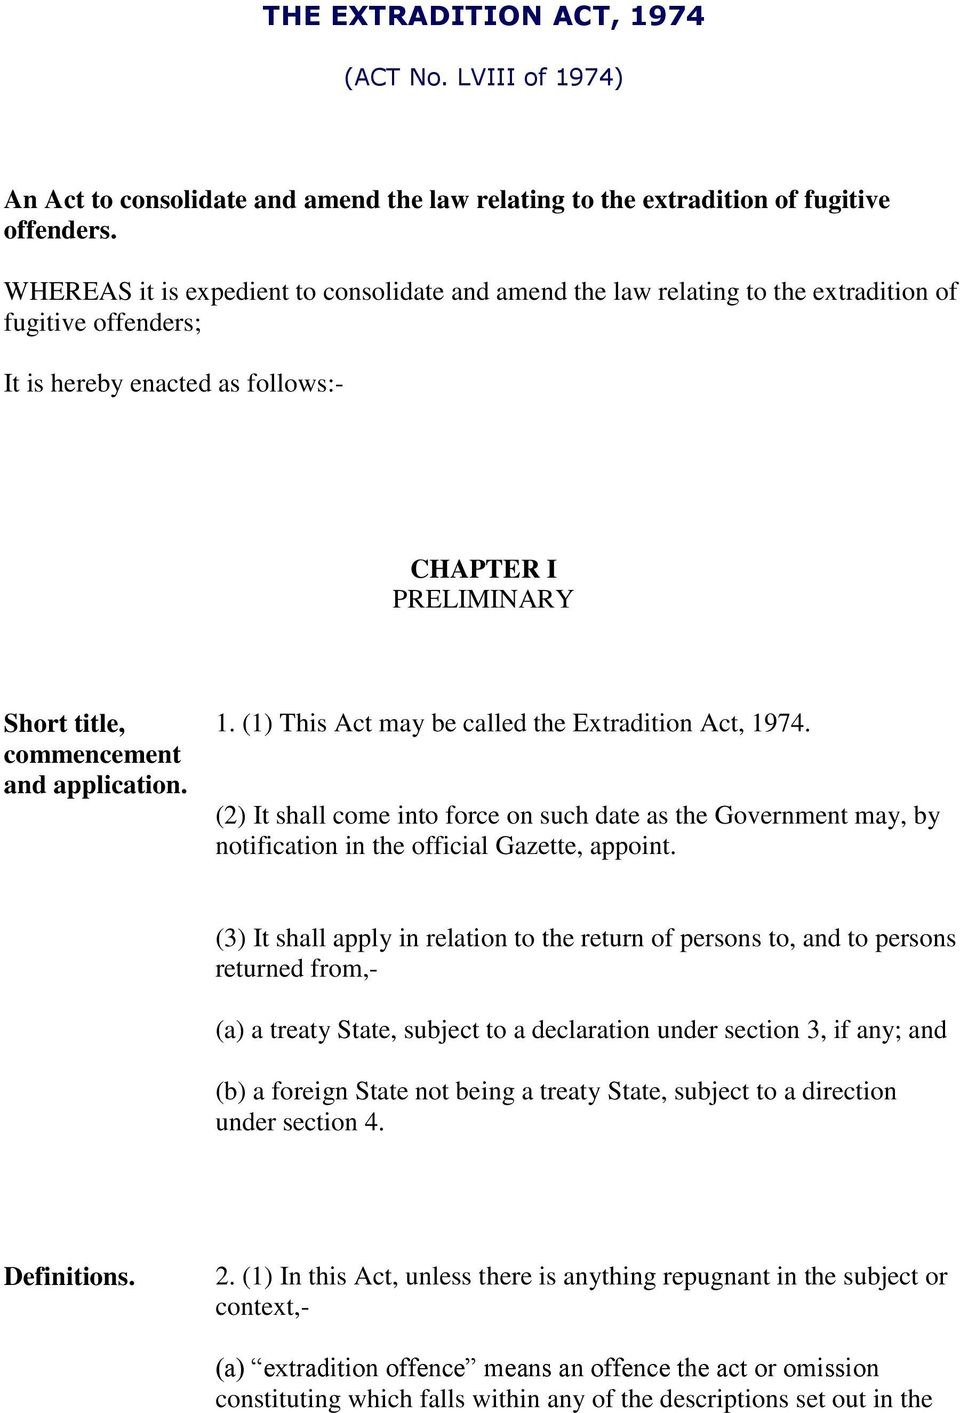 application. 1. (1) This Act may be called the Extradition Act, 1974. (2) It shall come into force on such date as the Government may, by notification in the official Gazette, appoint.